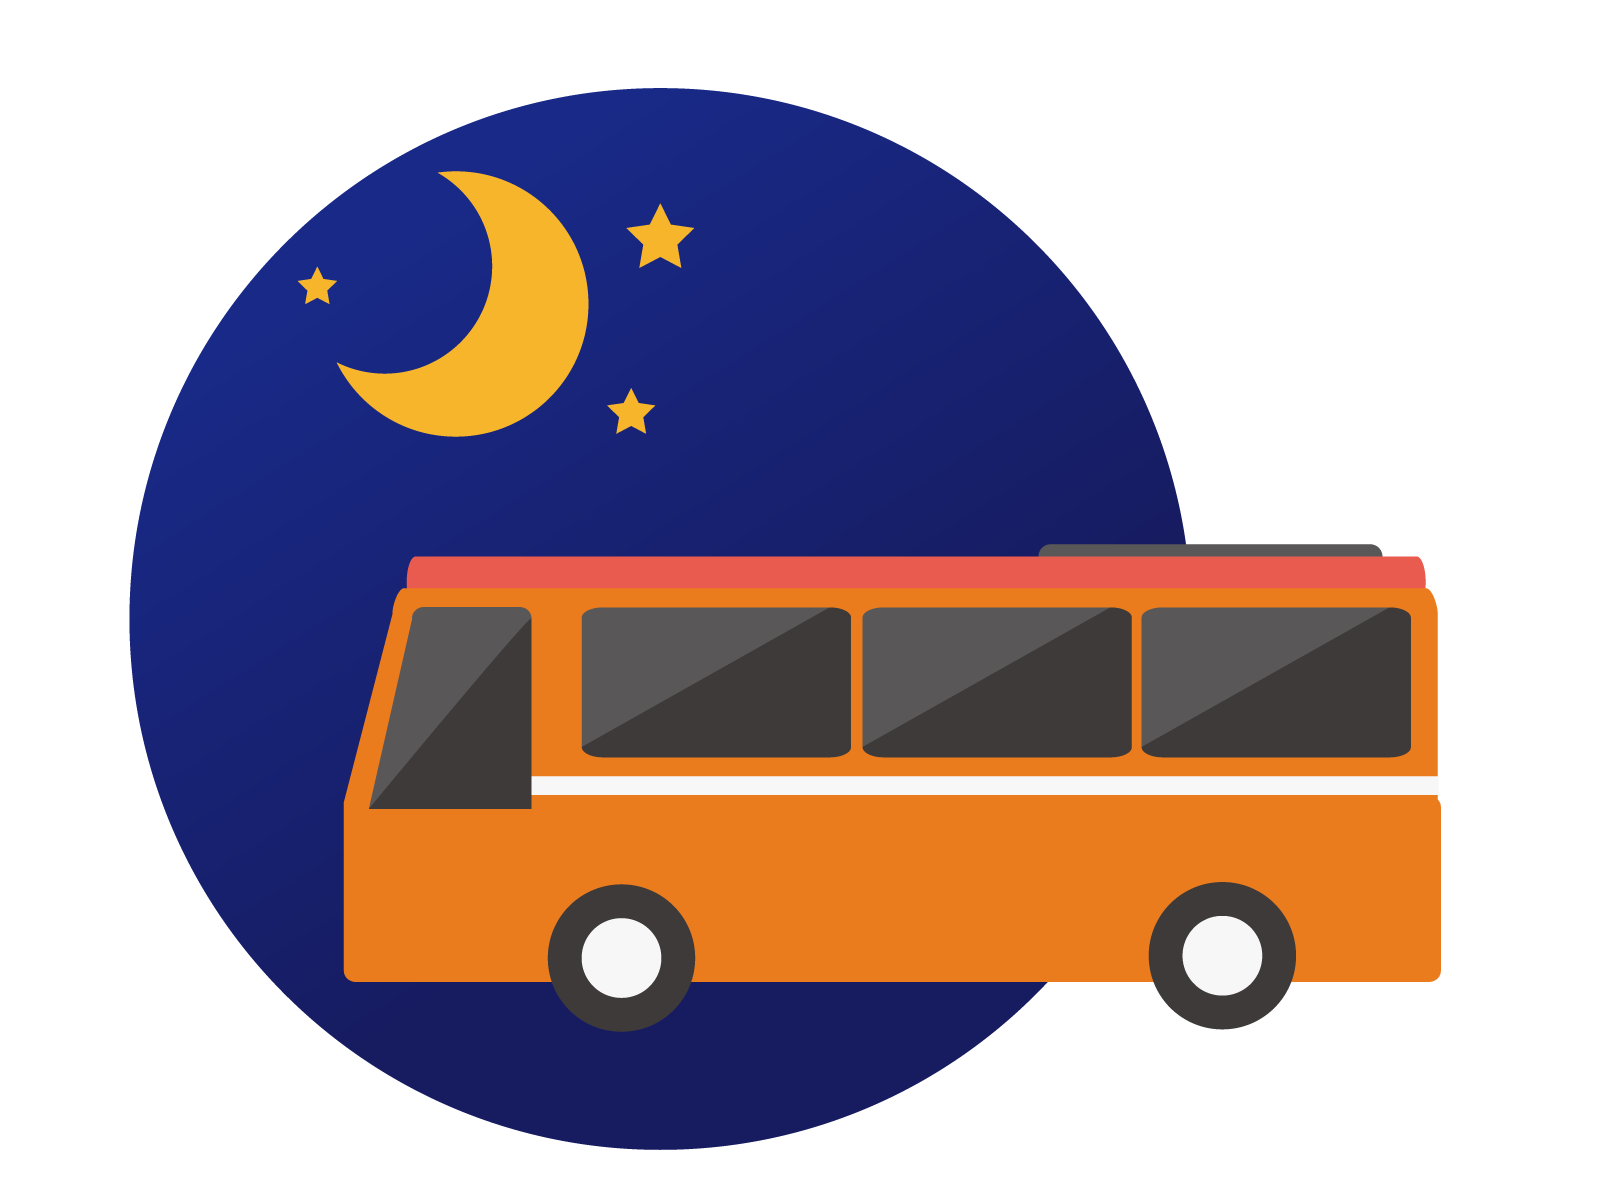 Travel by night bus. Clipart road straight road